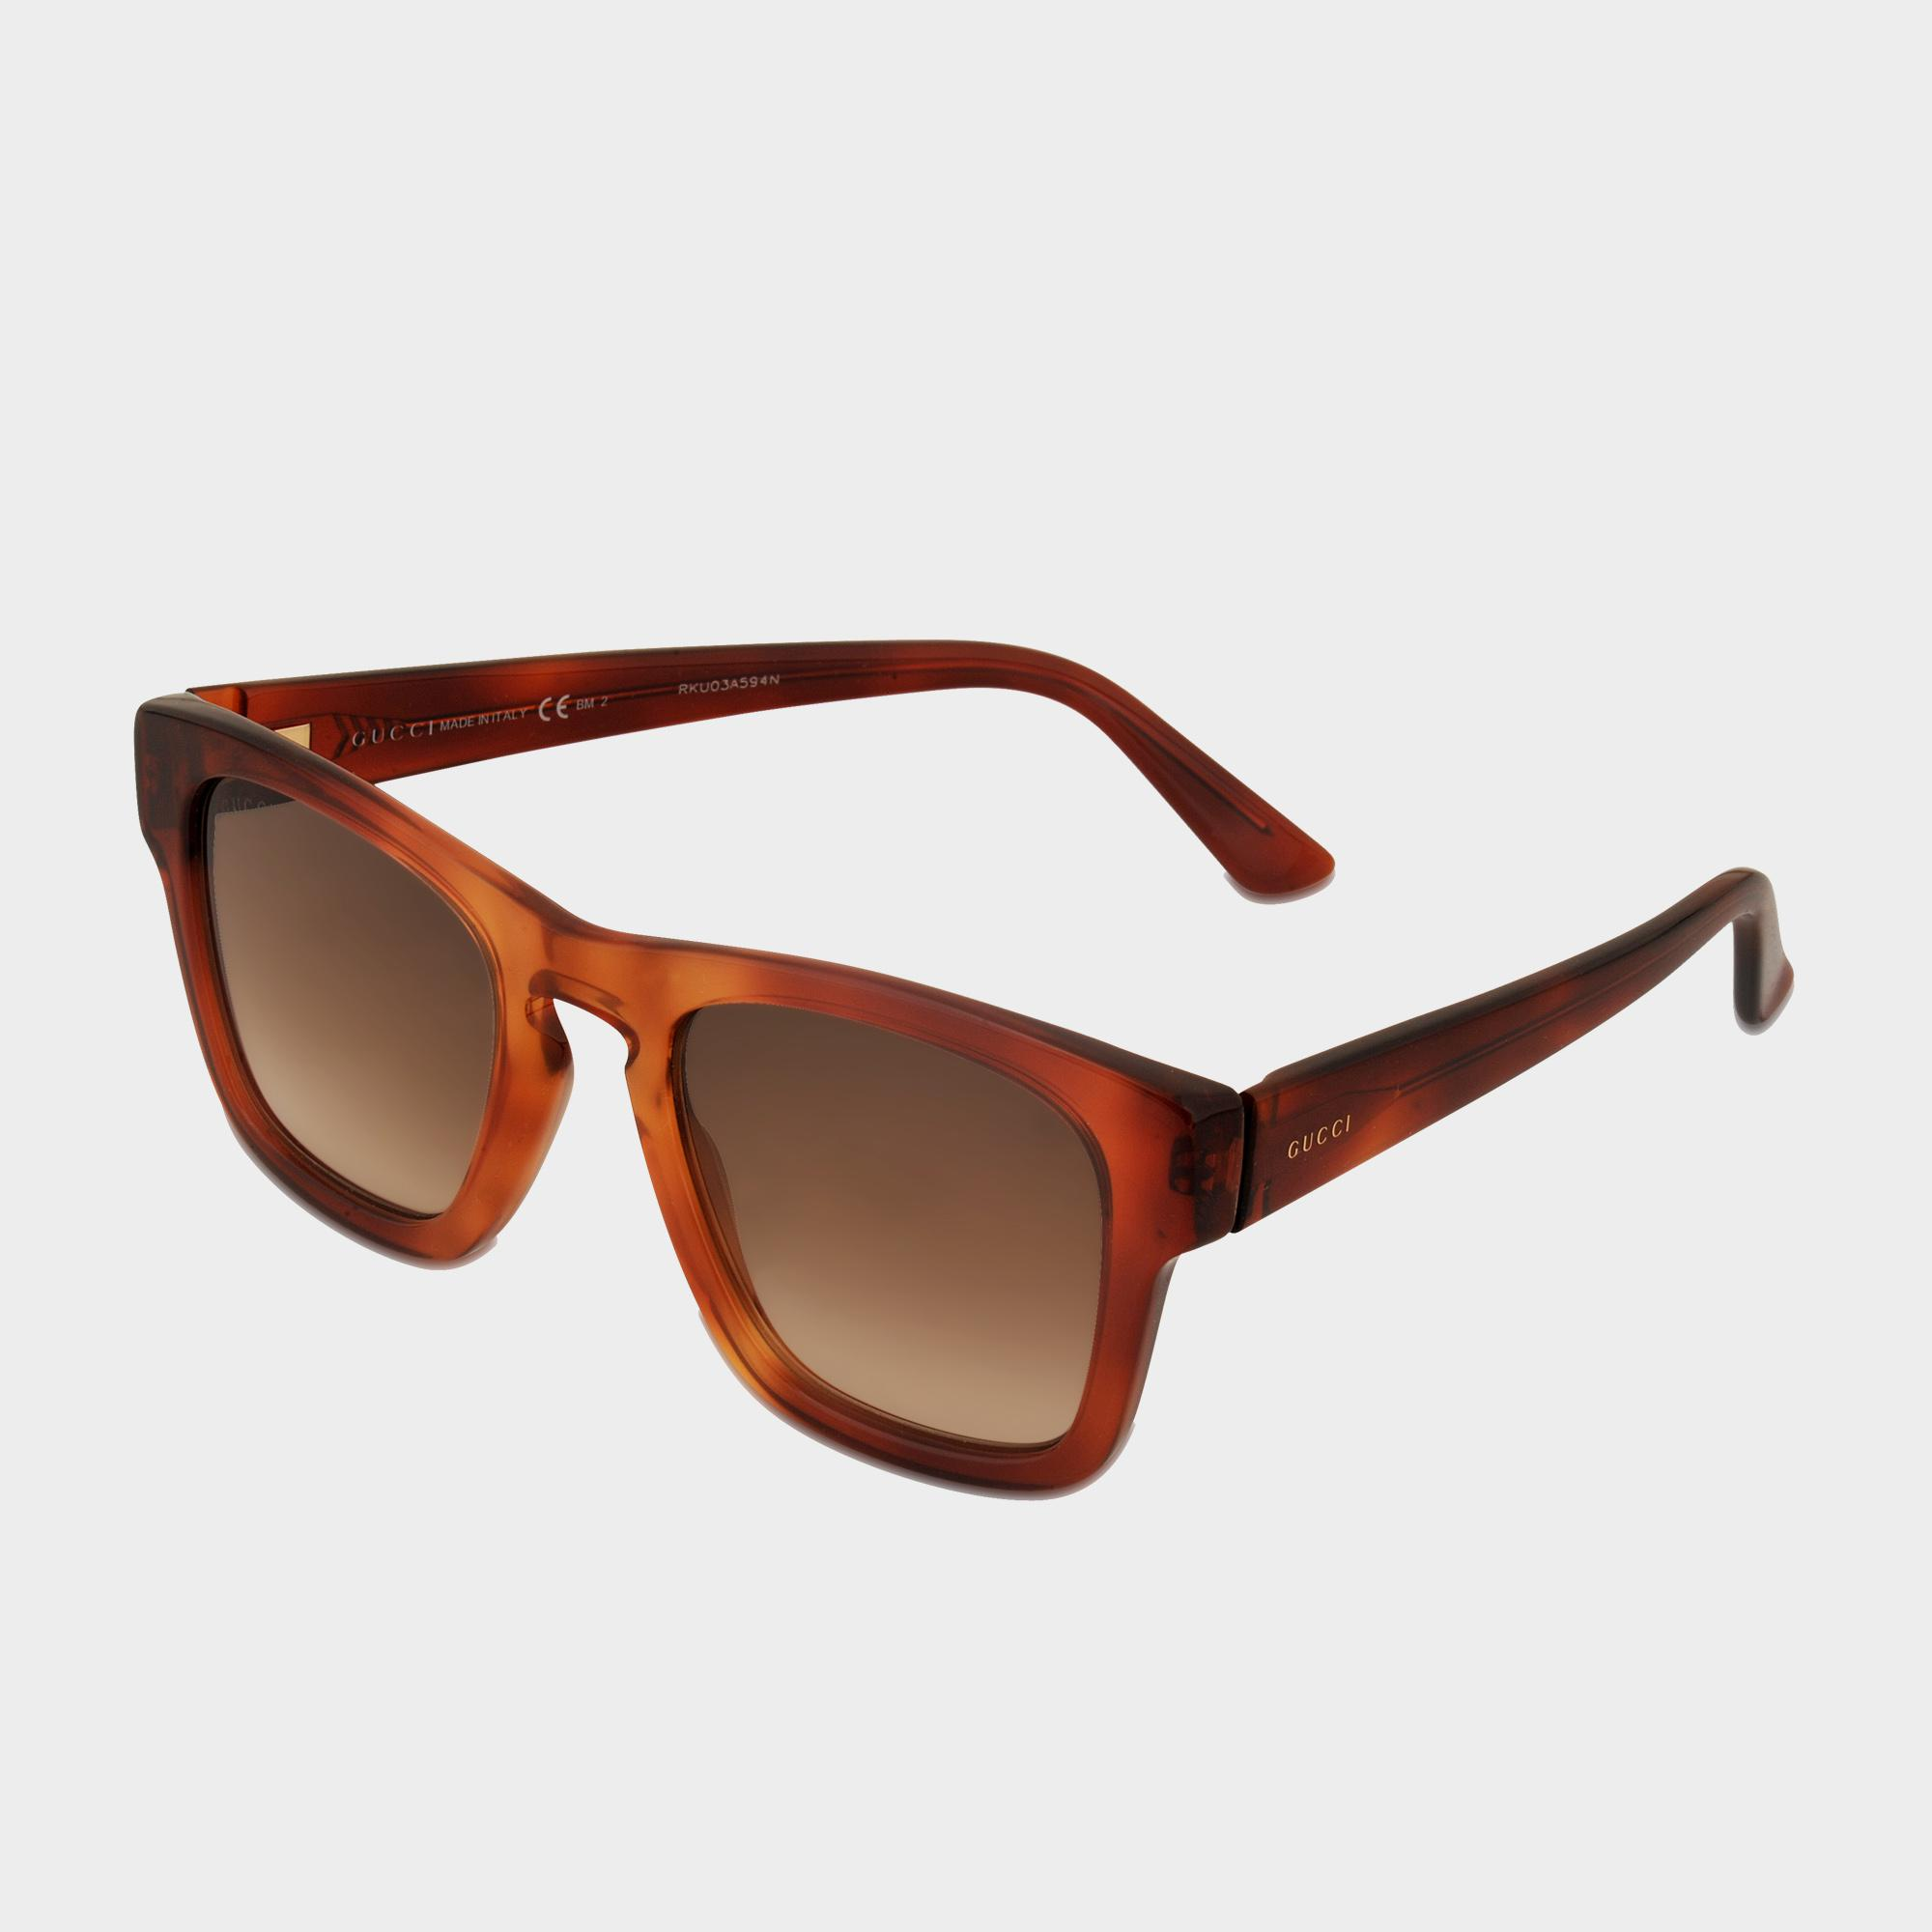 998bade9a94 Lyst - Gucci Gg 3791 s Sunglasses in Brown